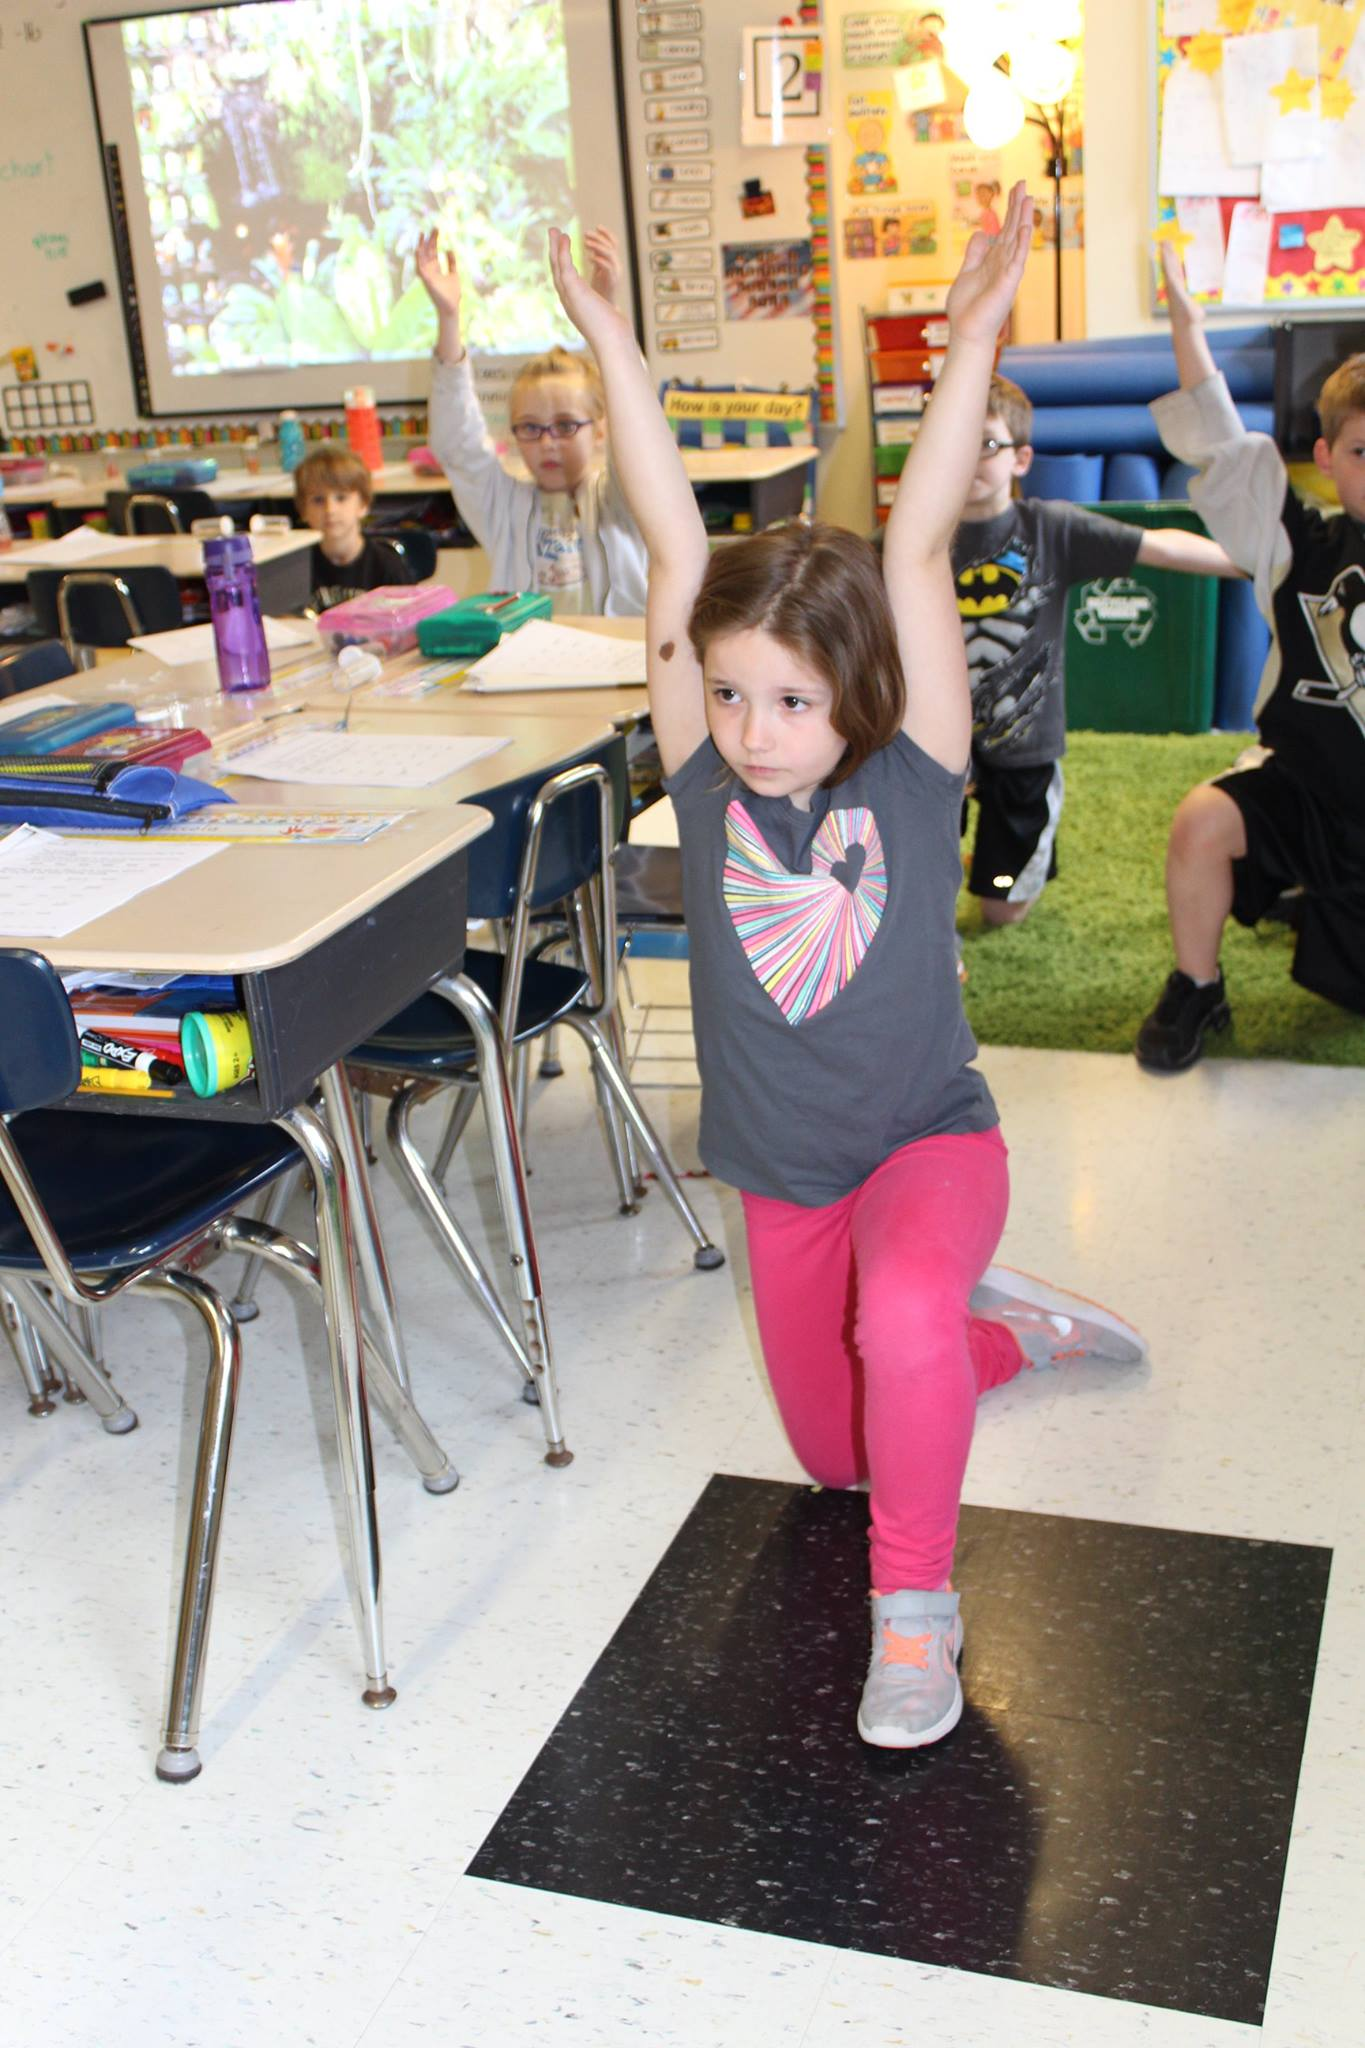 The kids doing yoga in the classroom.